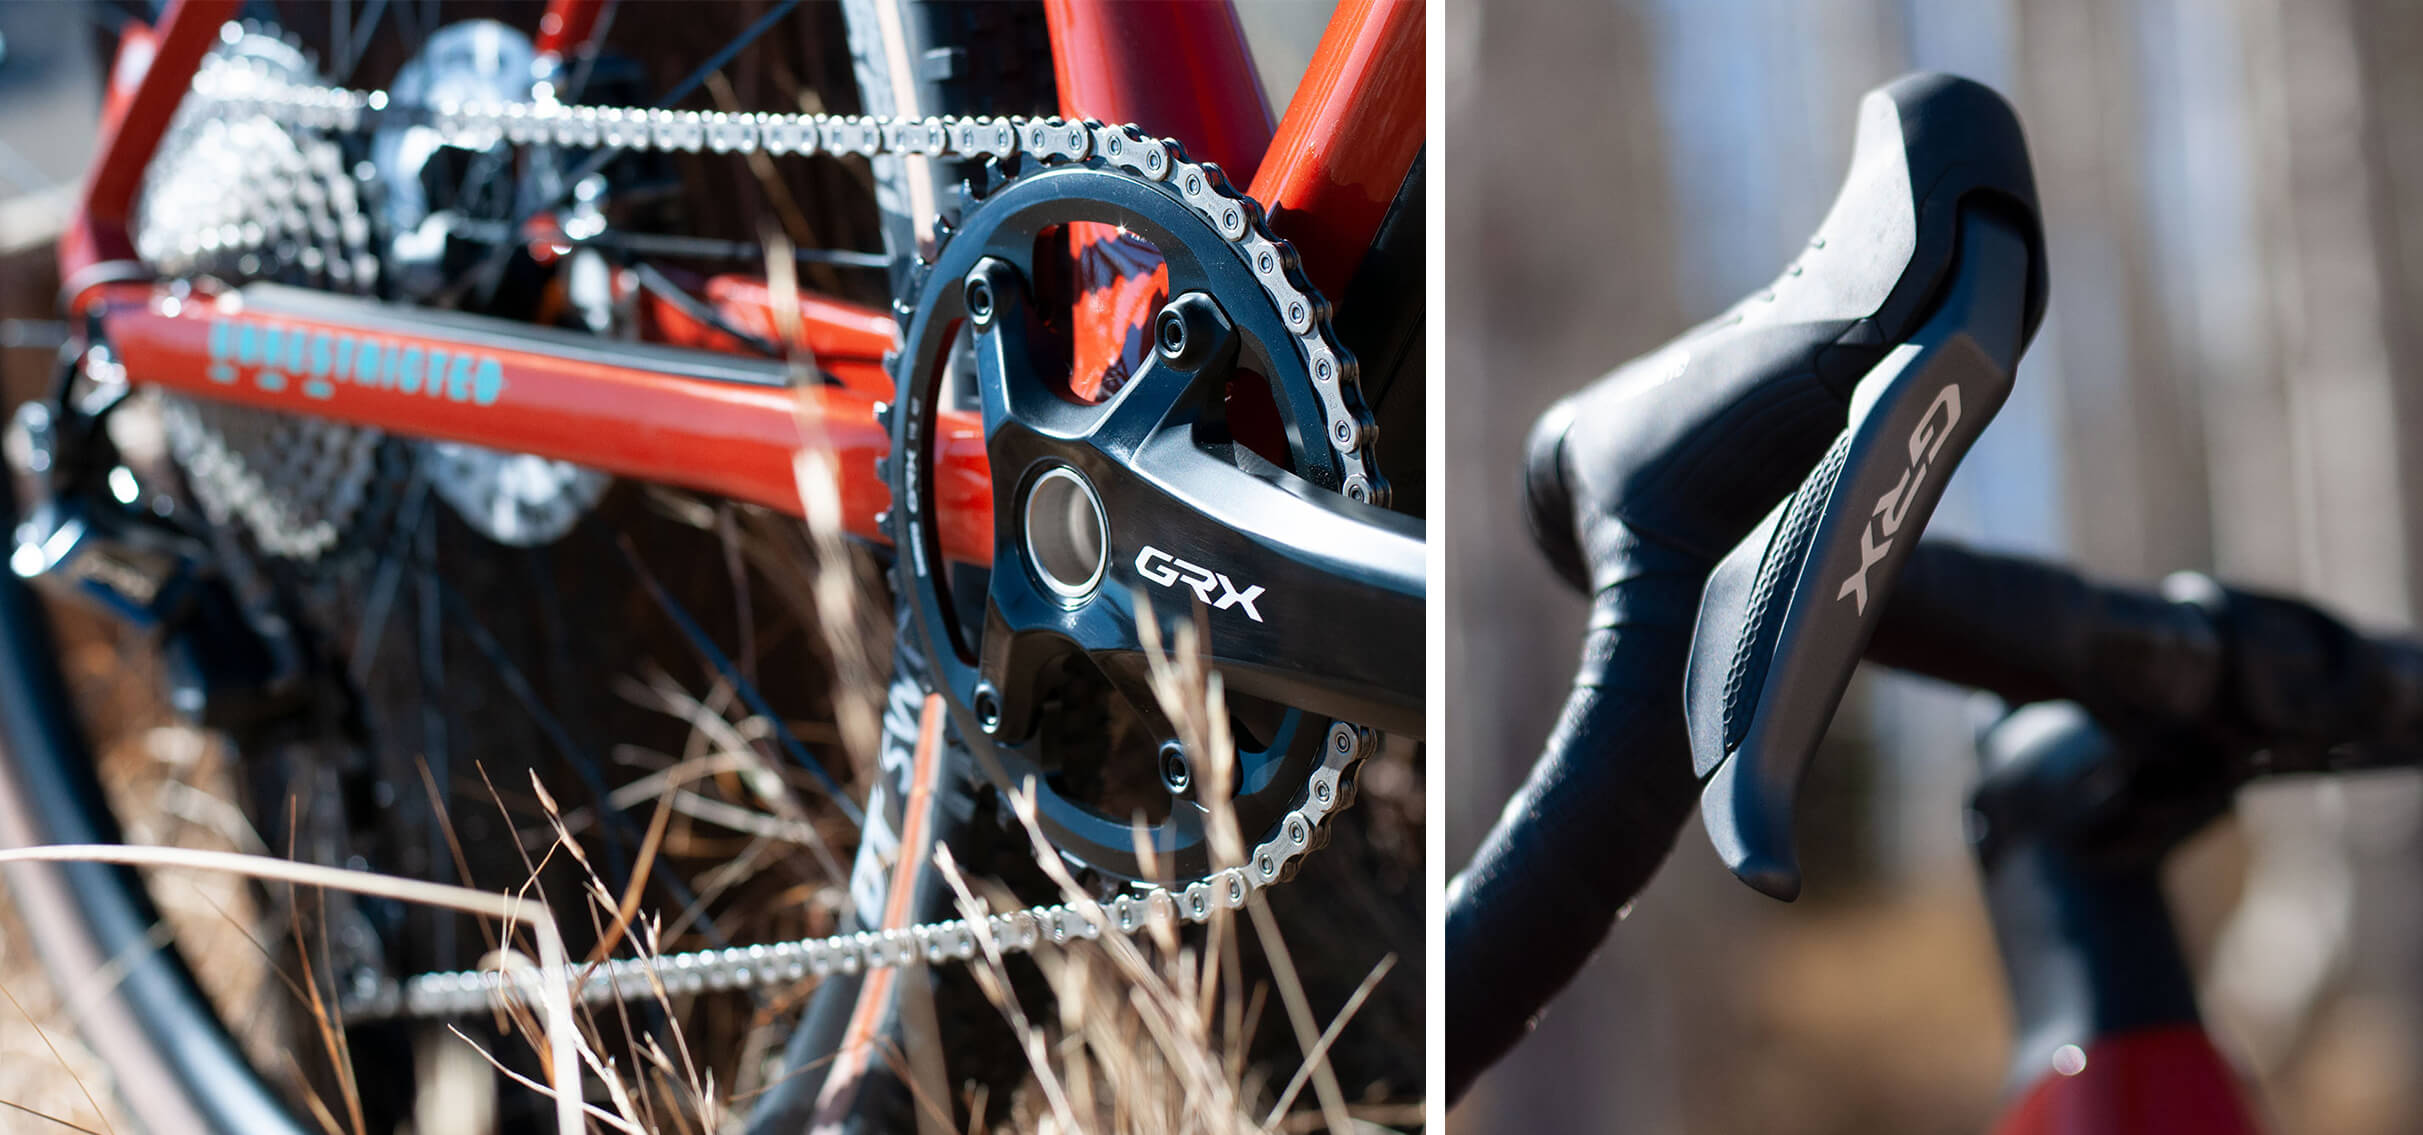 BMC URS TWO Disc Sale Ultegra Di2 - Contender Bicycles